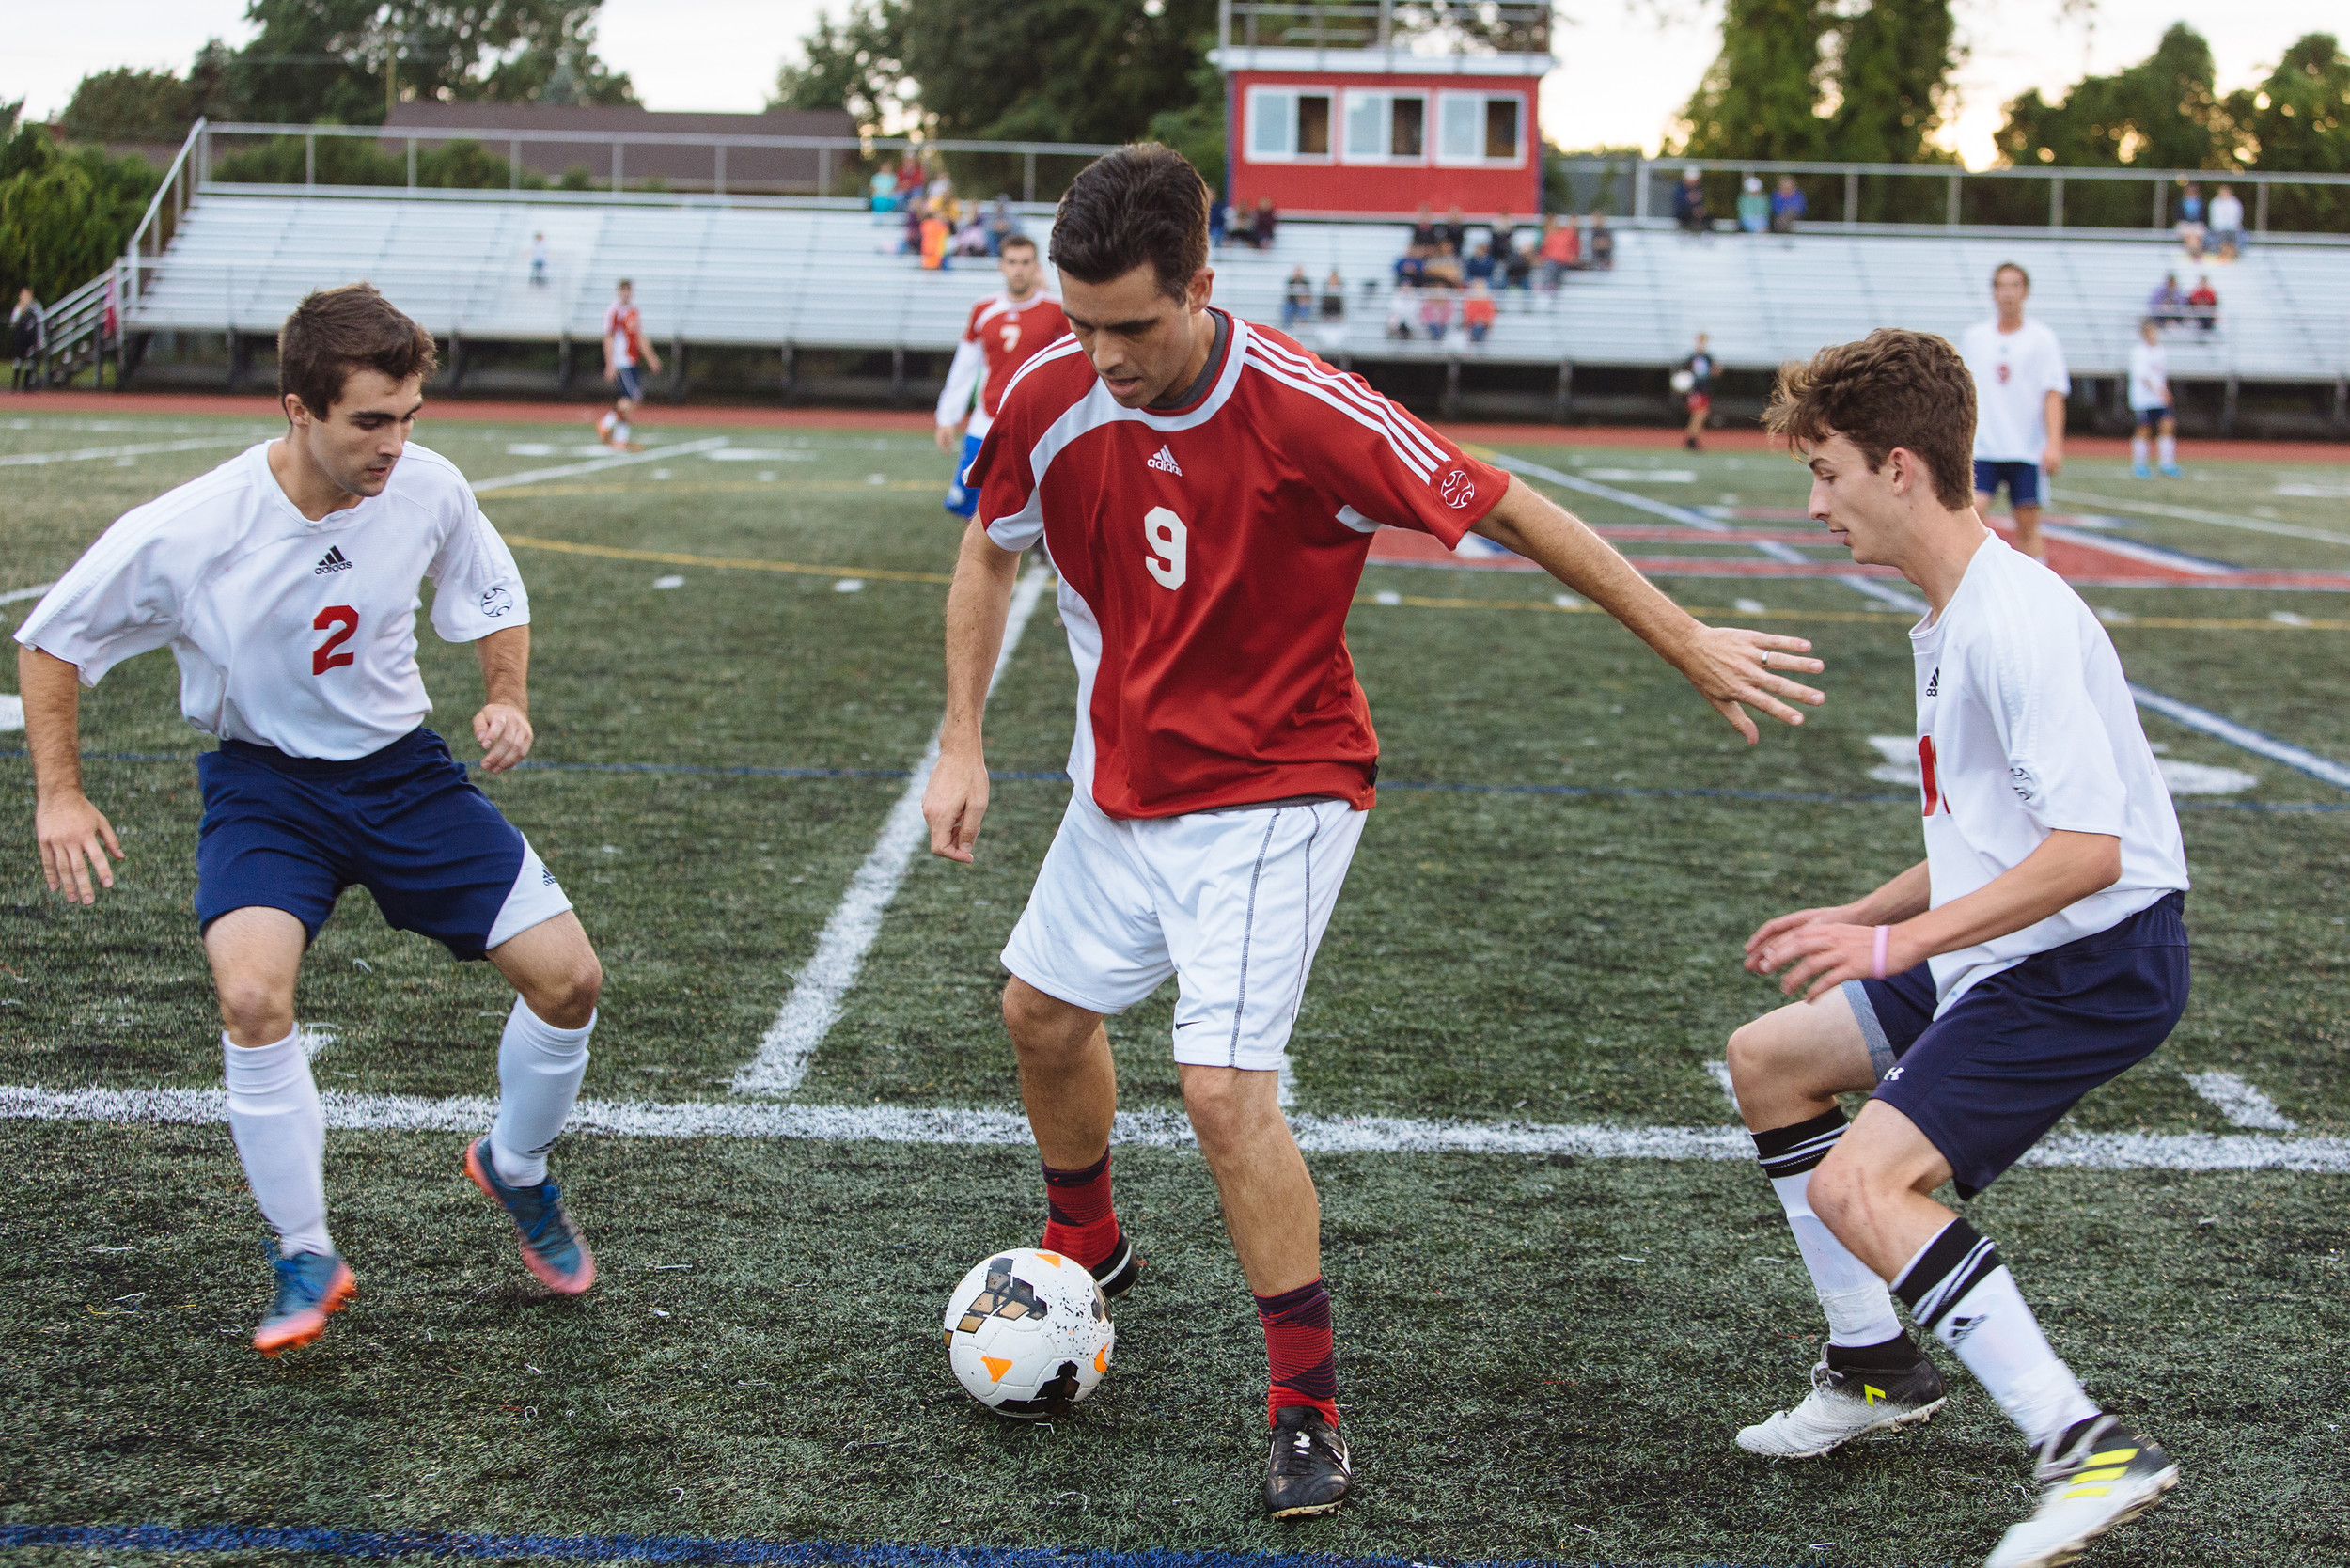 Alumni team member Brian Rosa (center) maintains control of the ball against seniors Kenneth Armijo (left) and Jimmy Baronian of the PHS team.